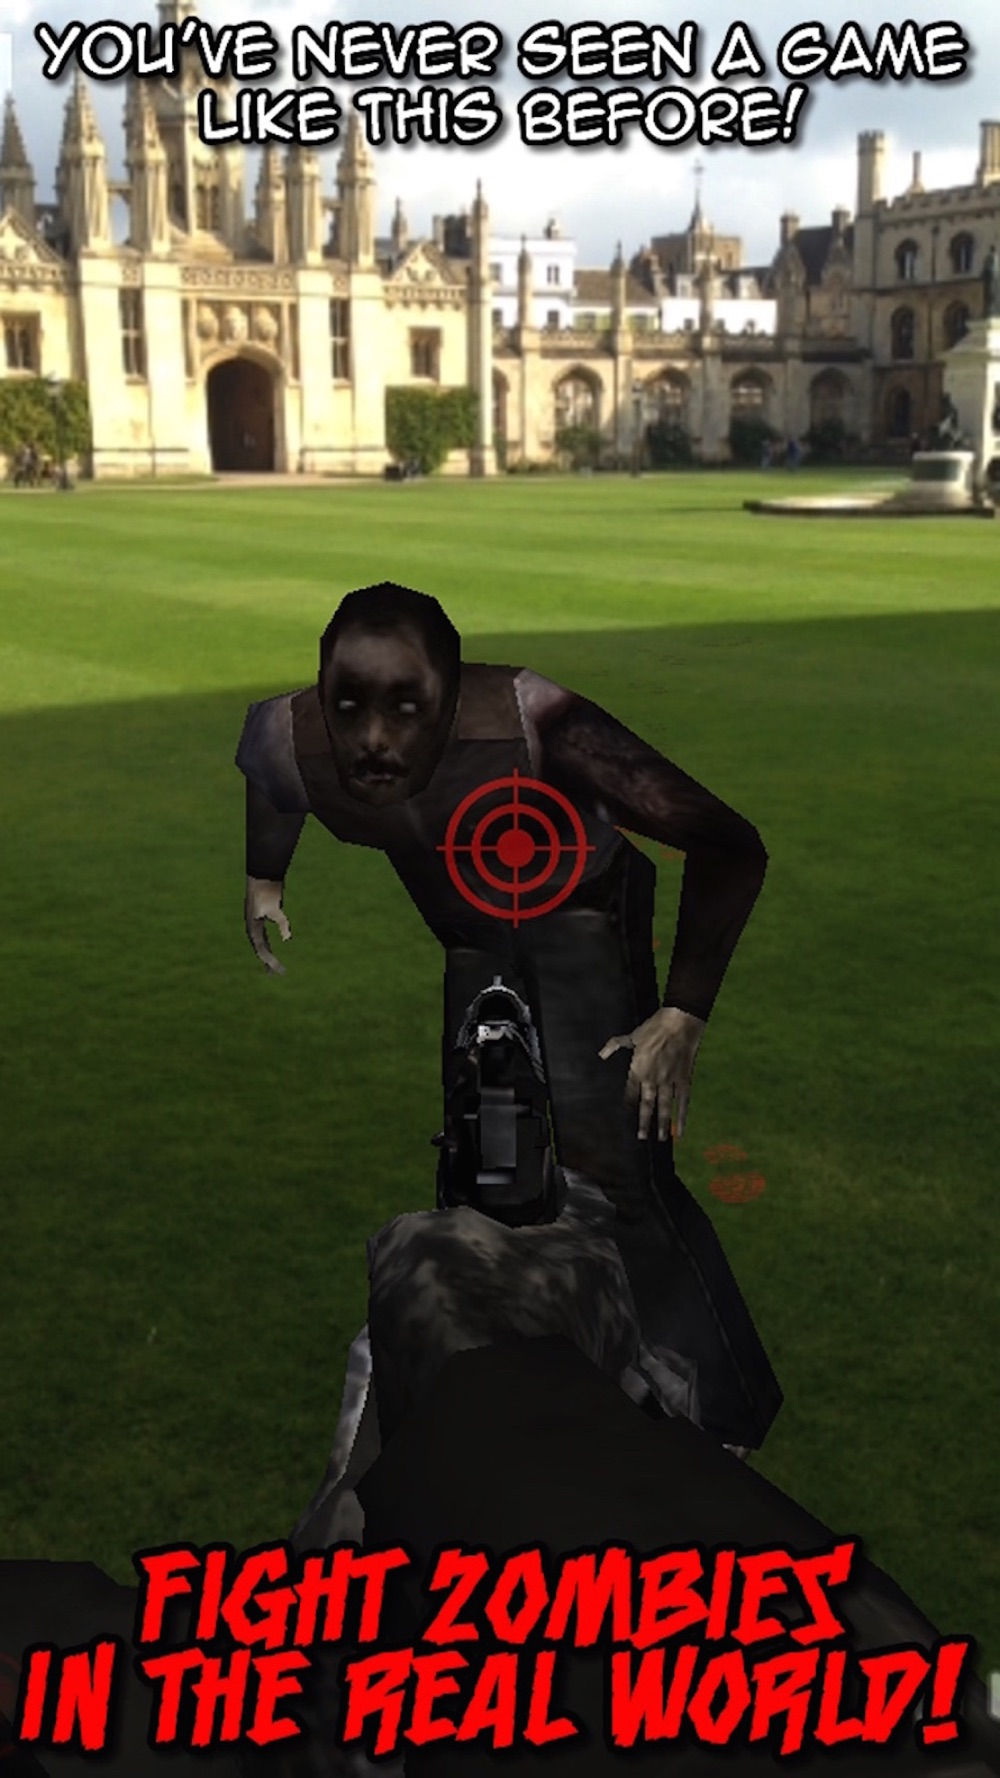 Zombies GO! Fight The Dead Walking Everywhere with Augmented Reality (FREE Edition) cheat codes